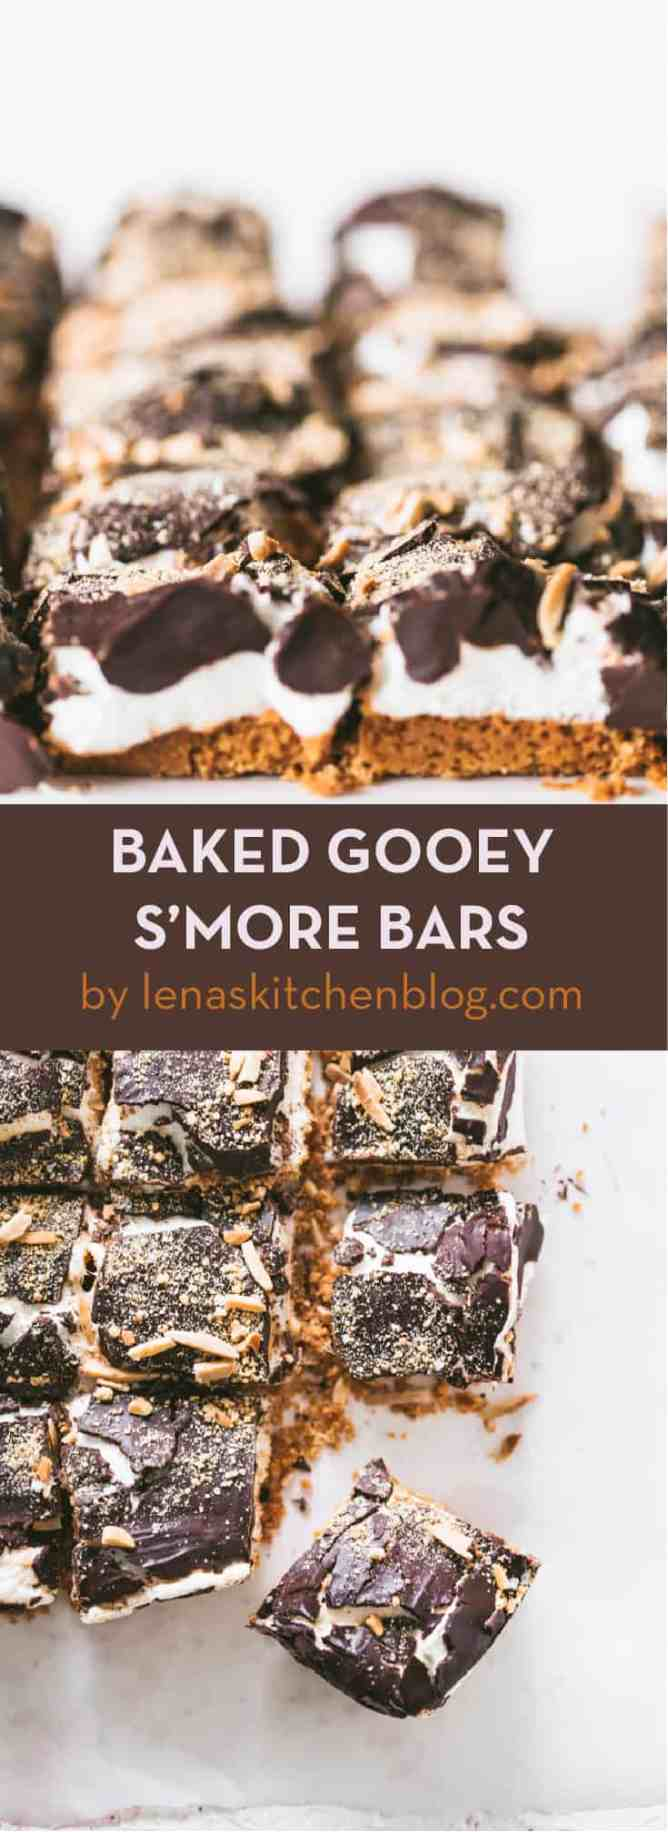 easy BAKED GOOEY S'MORE BARS